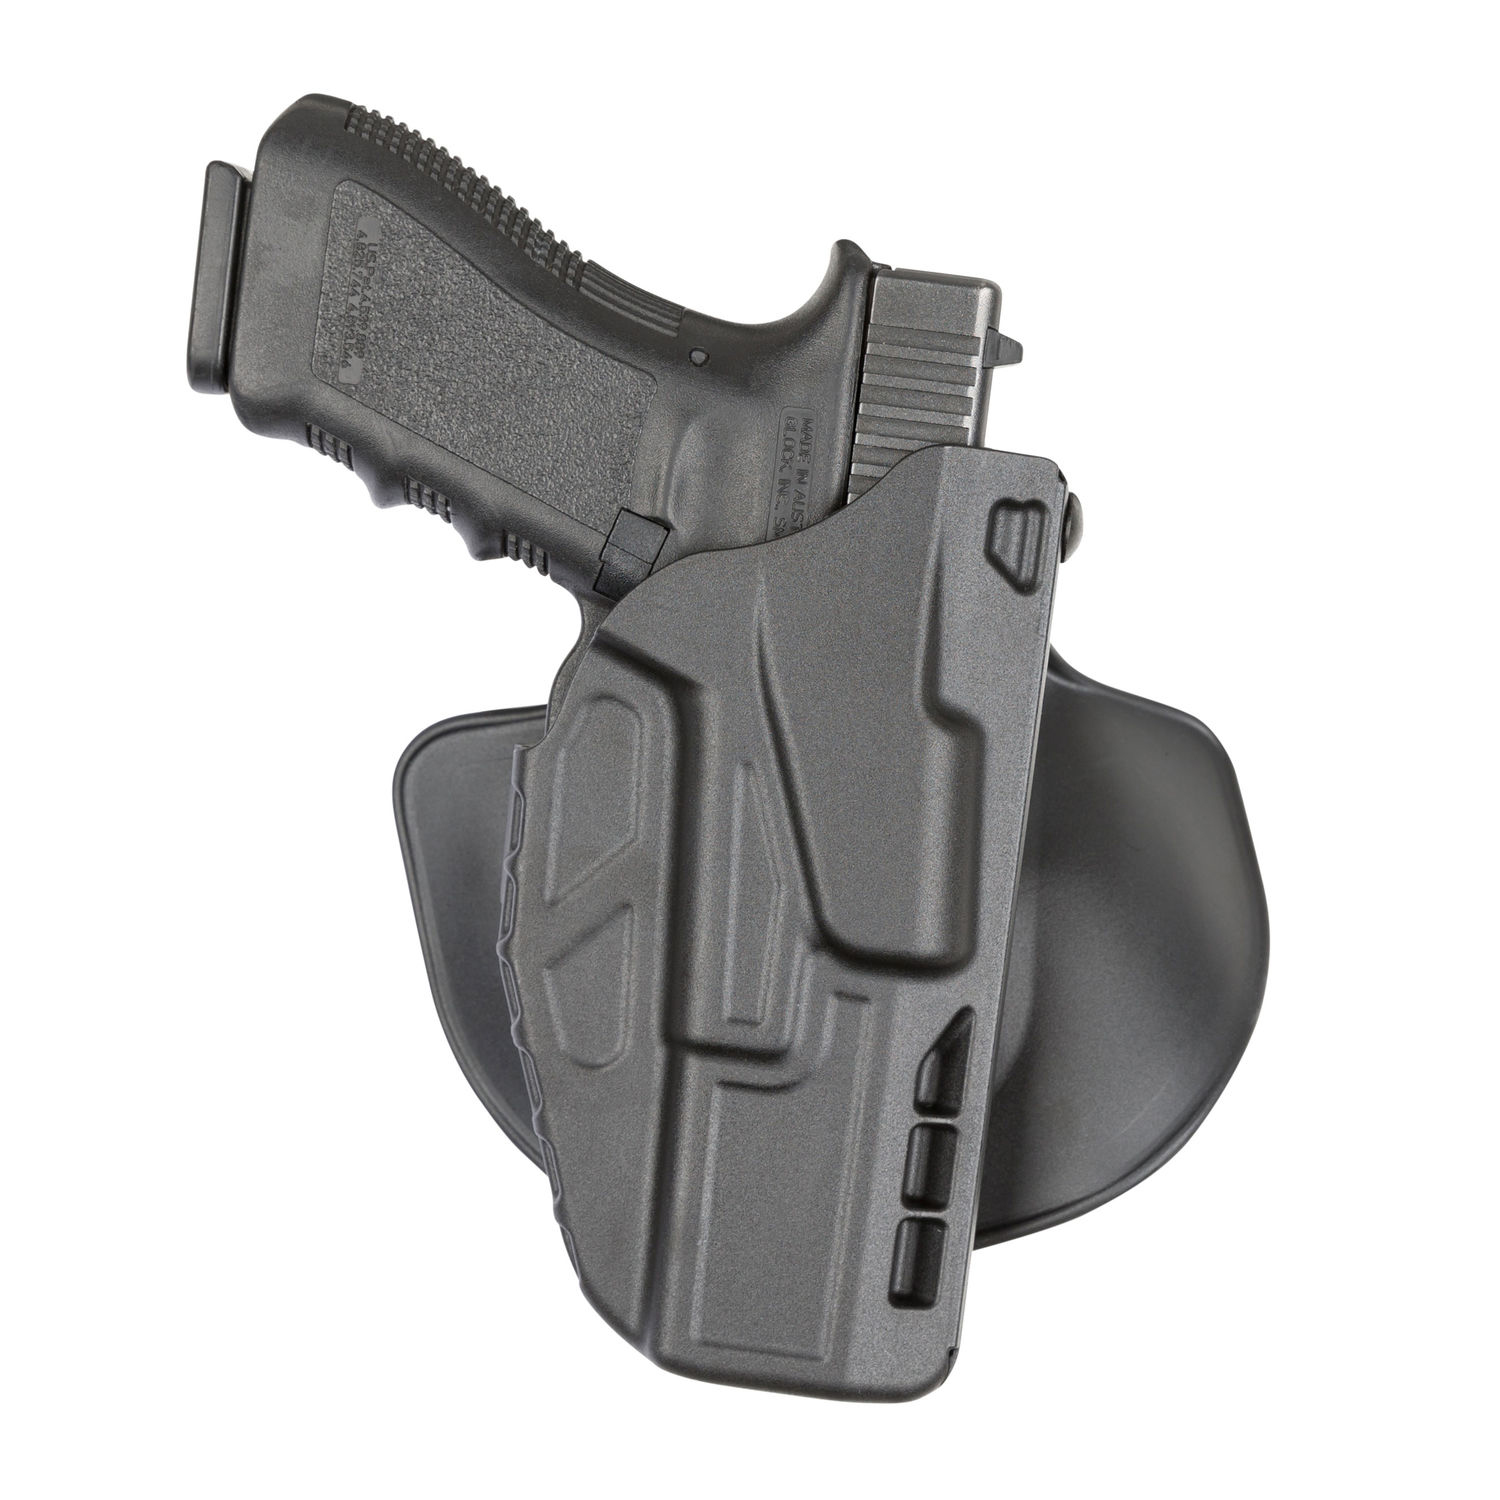 Safariland Model 7378 7TS ALS Open Top Concealment Paddle Holster, Glock 19